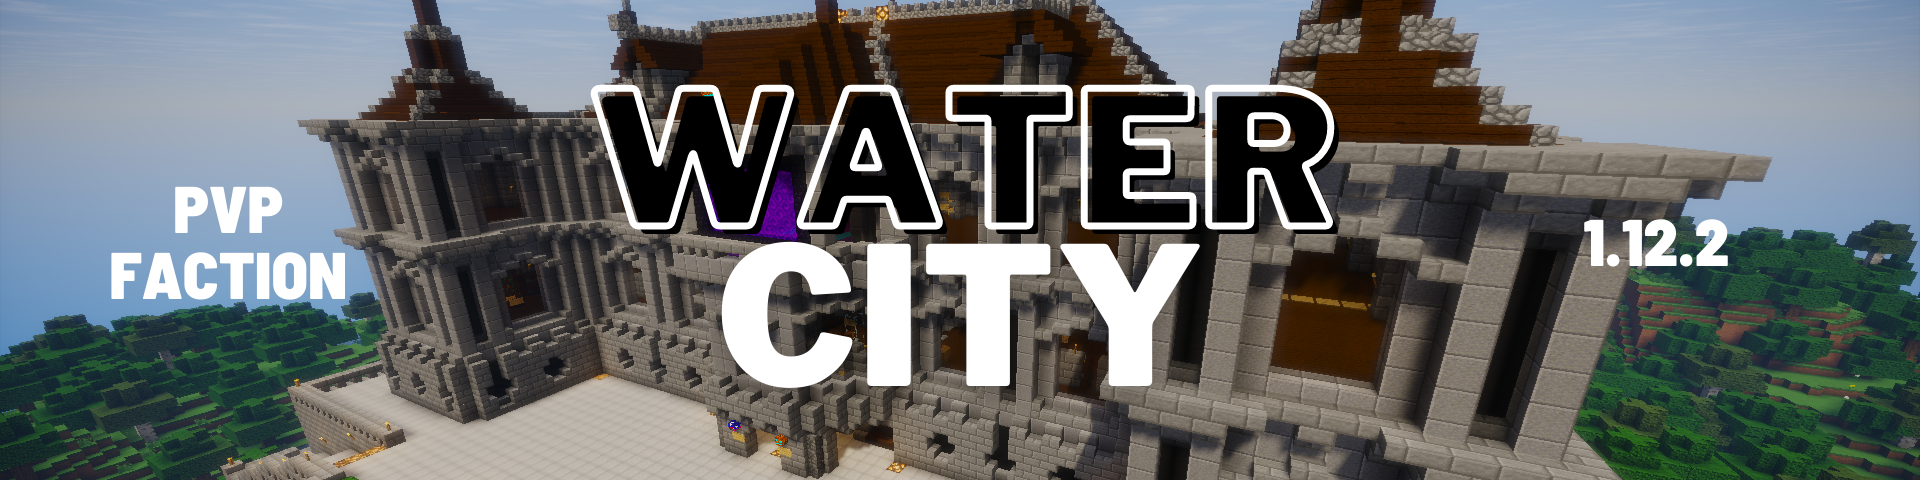 WaterCity_2.png